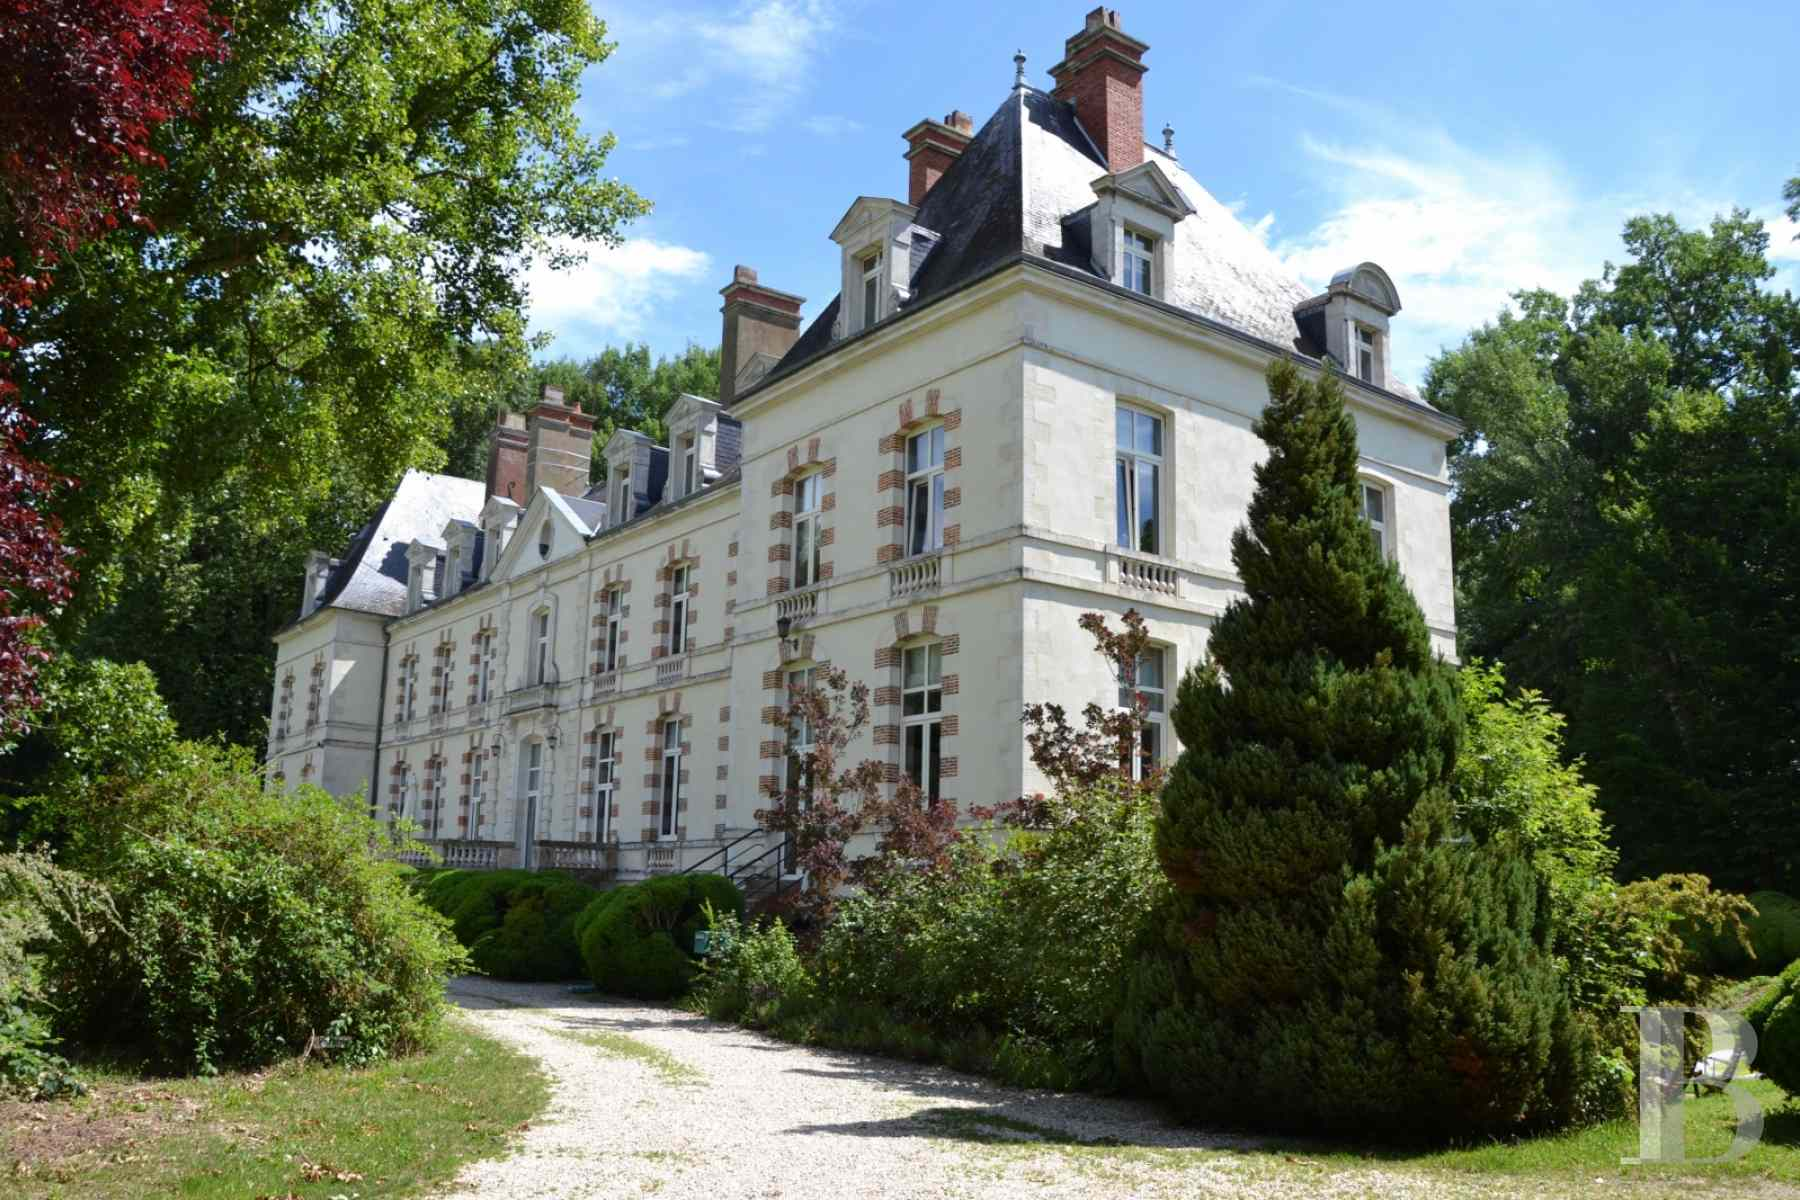 chateaux for sale France burgundy 18th century - 2 zoom